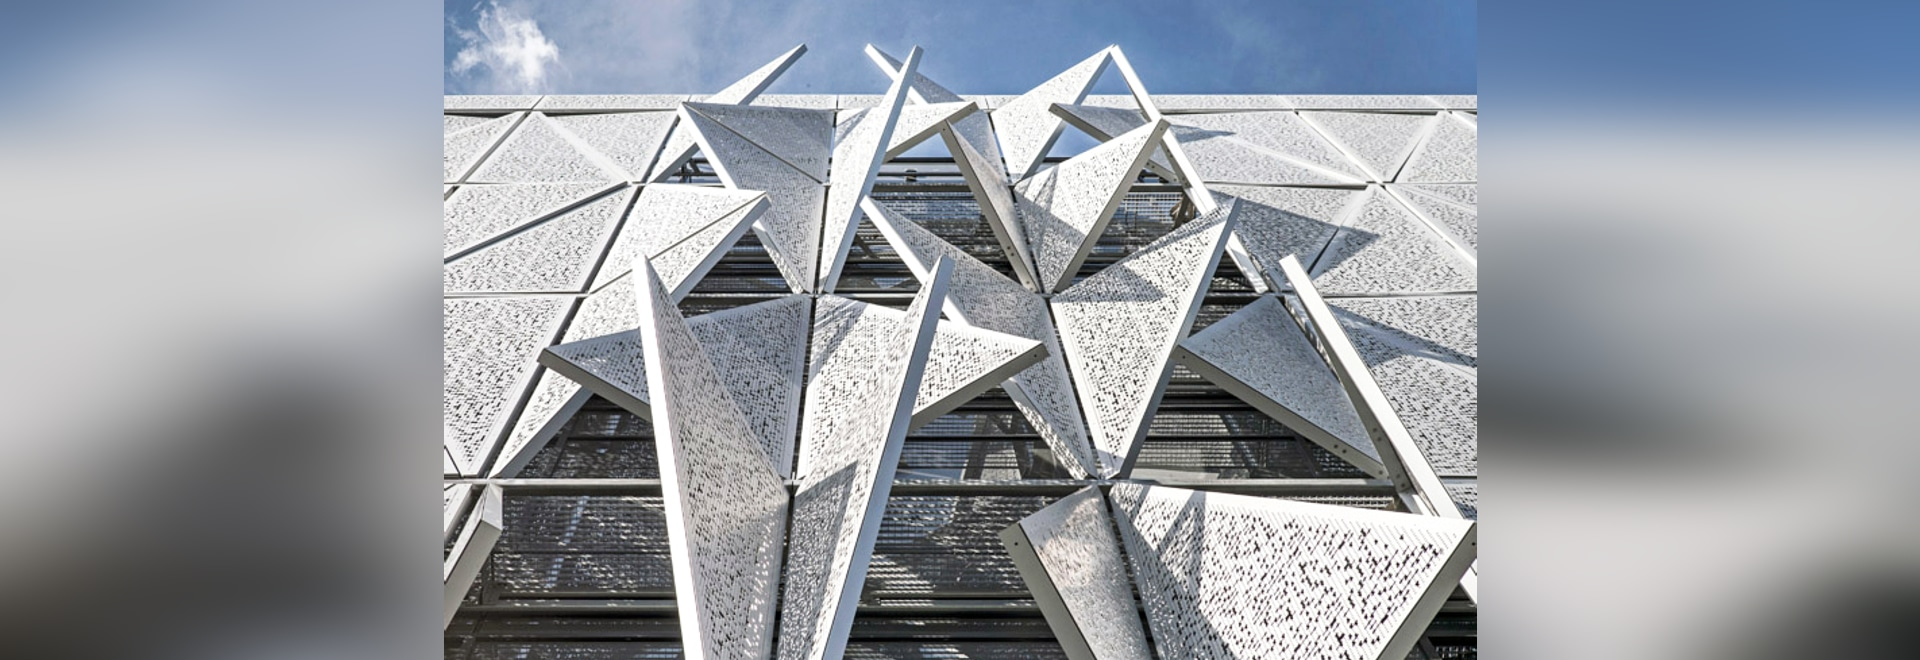 Facade pattern architecture  This building's geometric facade transforms to regulate daylight ...